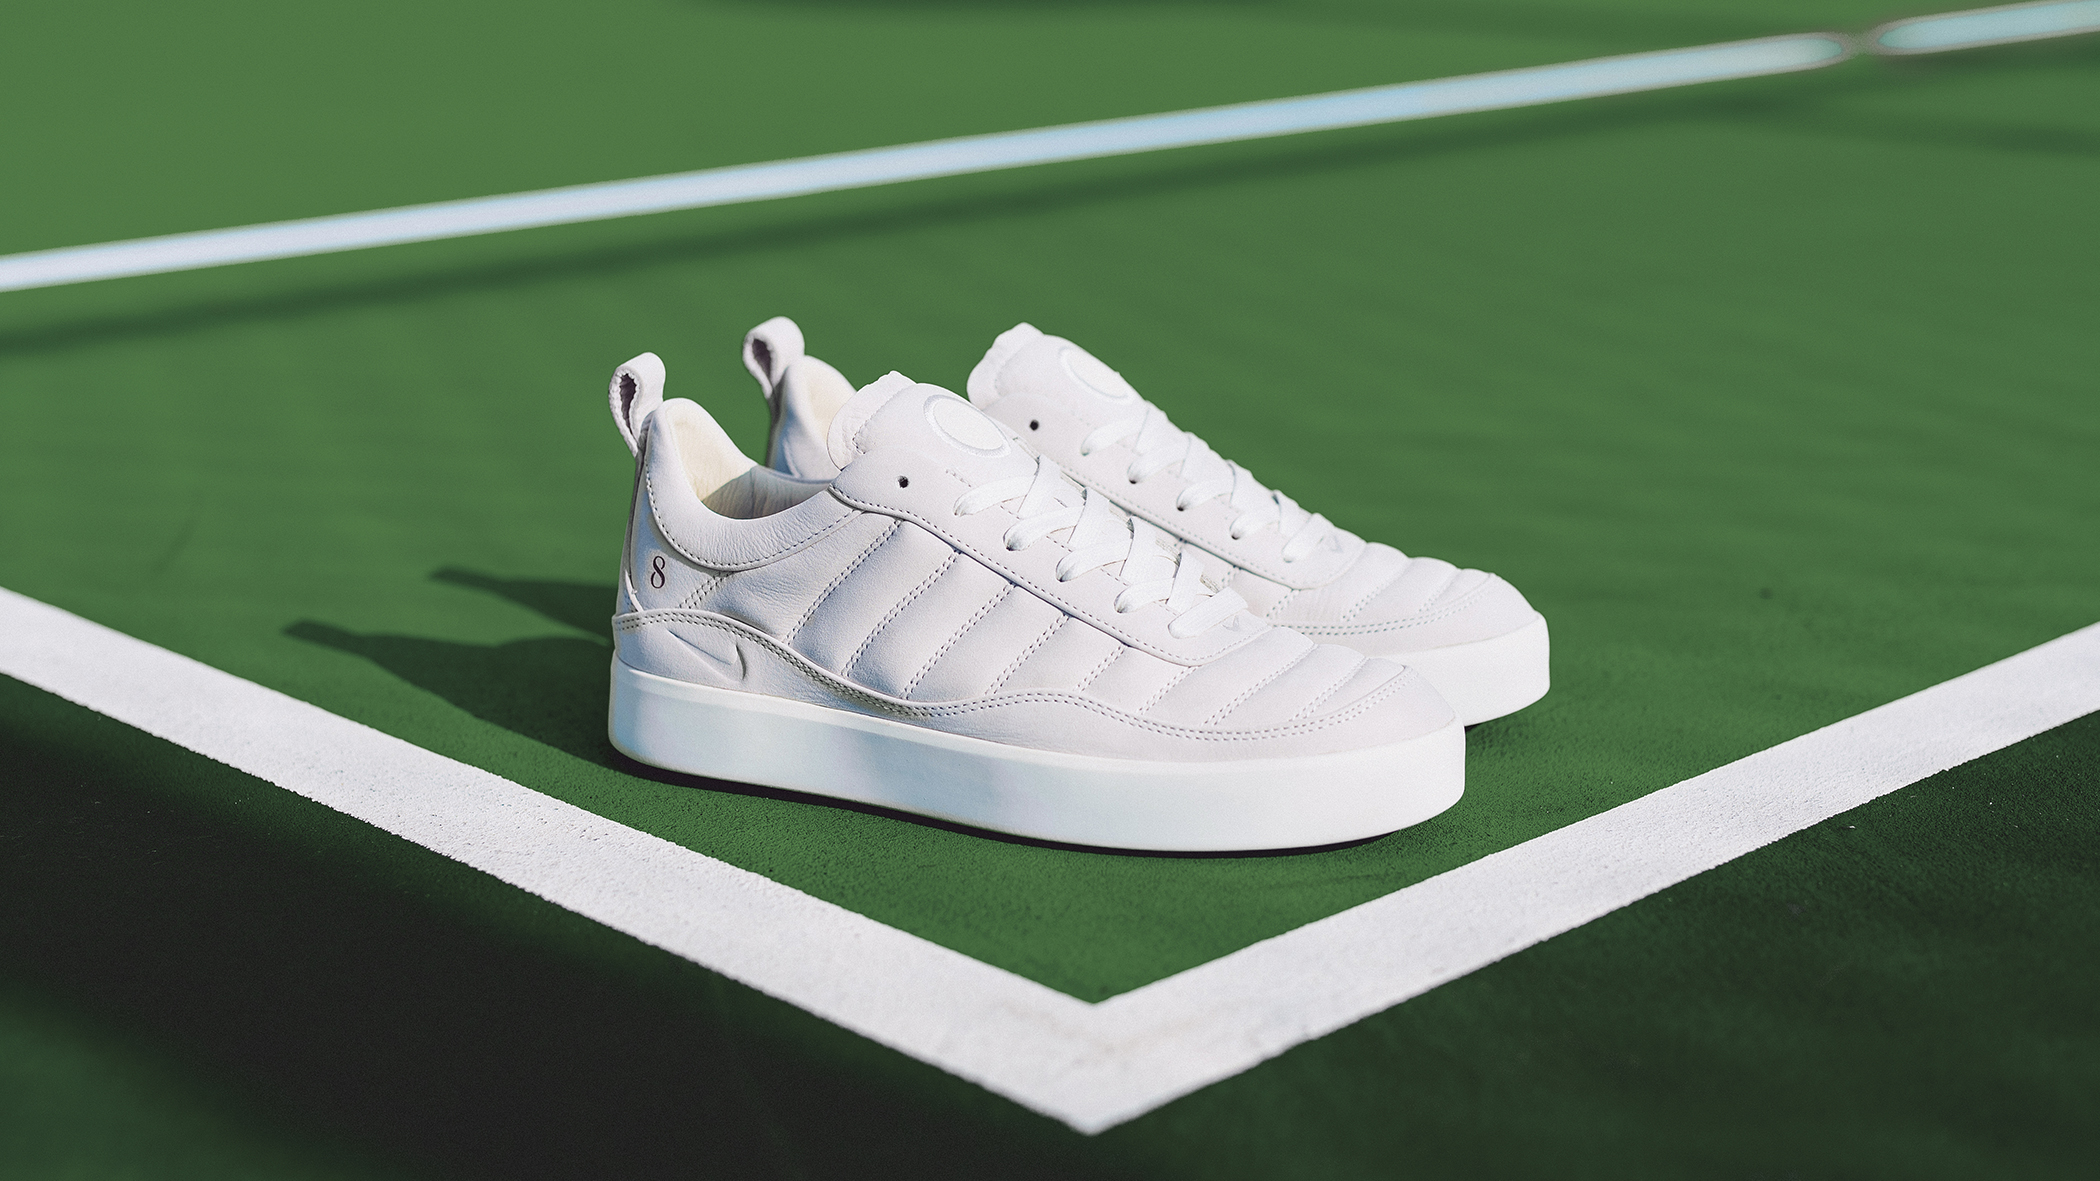 880713faa55539 Nike Drop a Limited-Edition NIKELAB Oscillate for Roger Federer